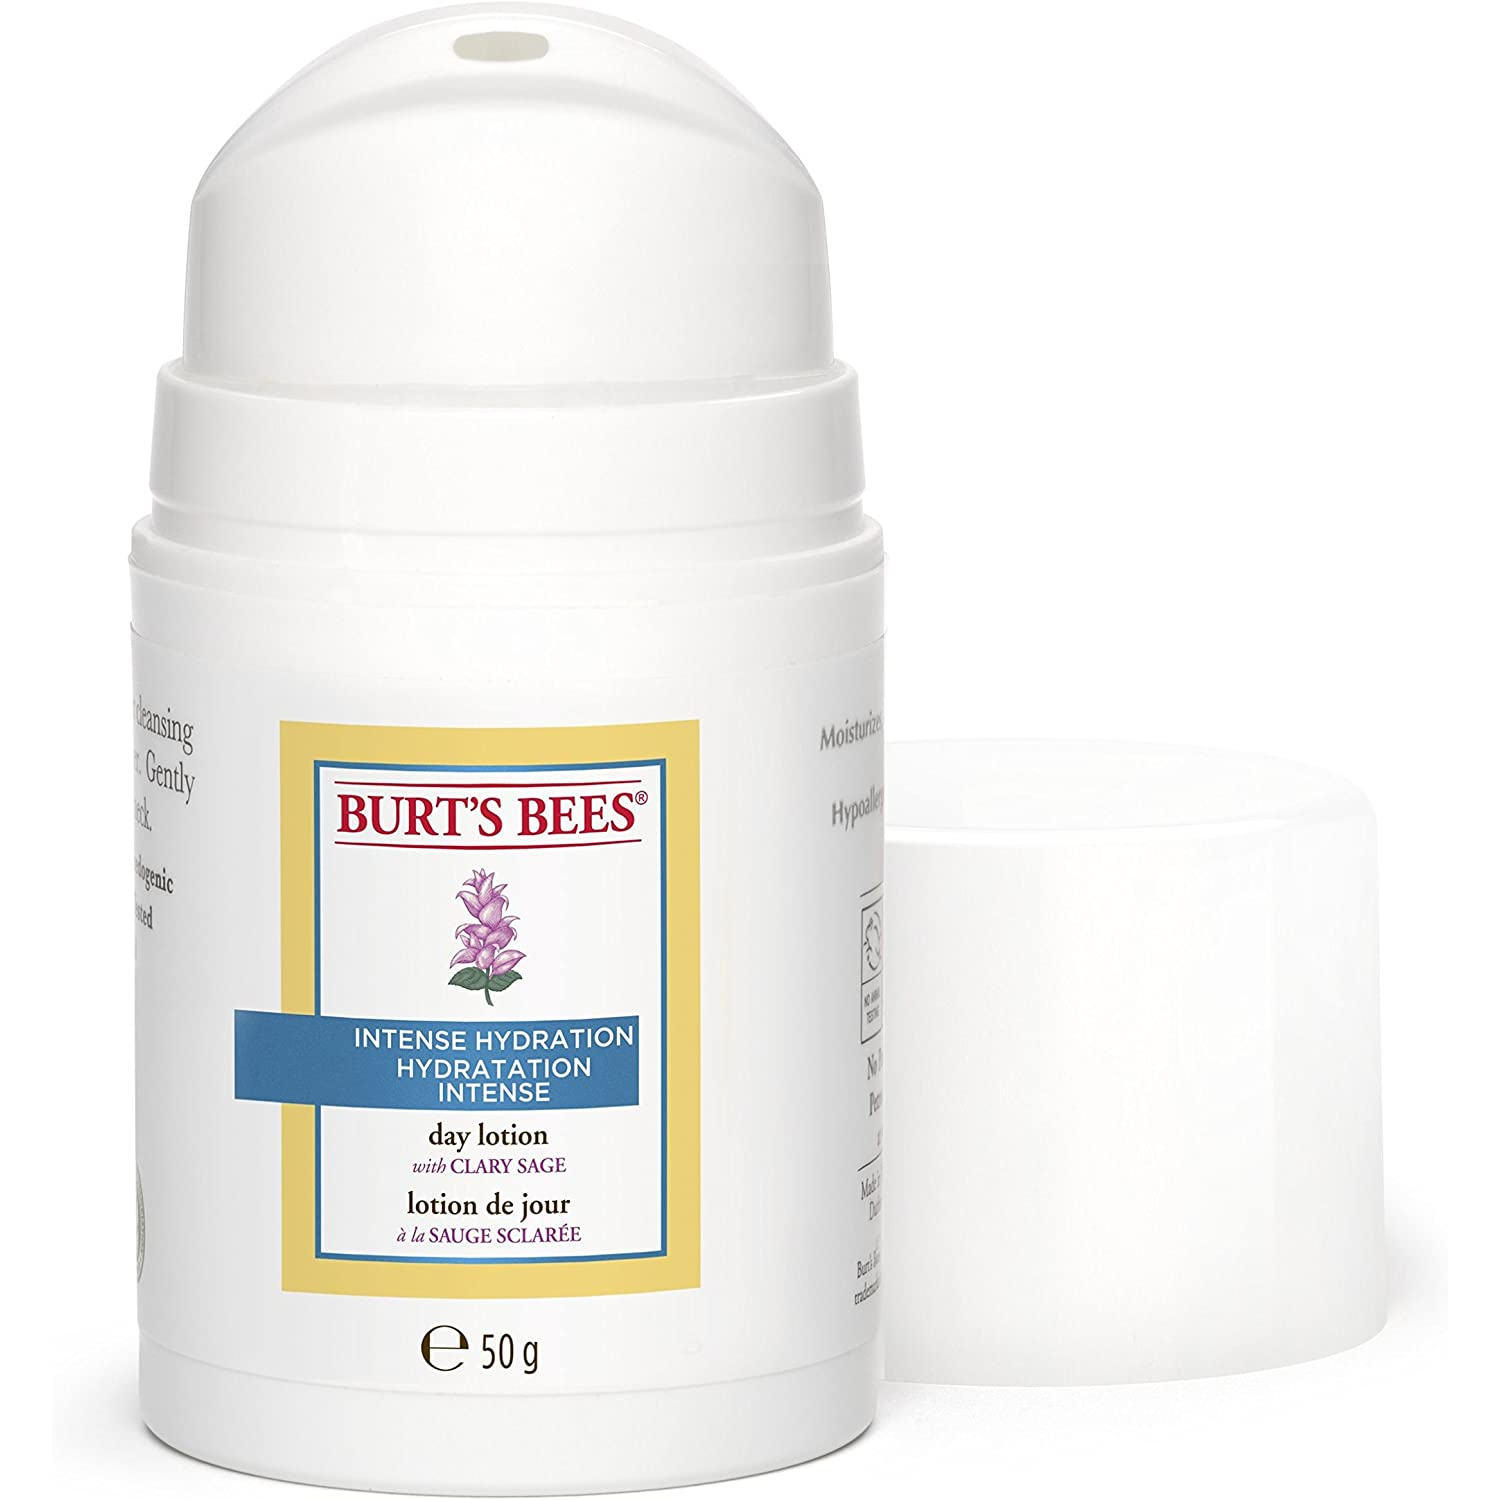 Burt's Bees Tageslotion